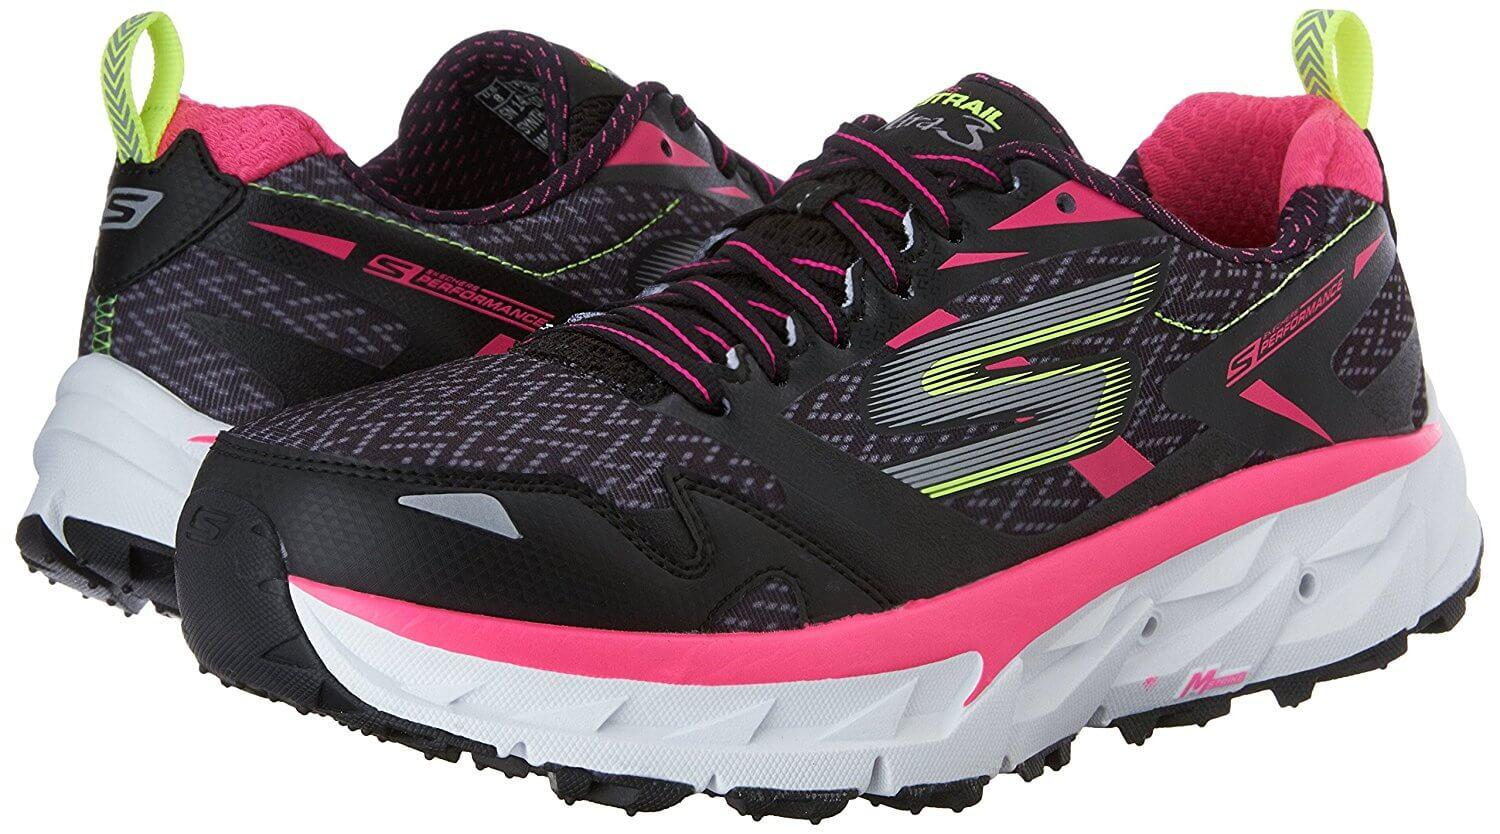 The Skechers GOTrail Ultra 3 is understatedly stylish.